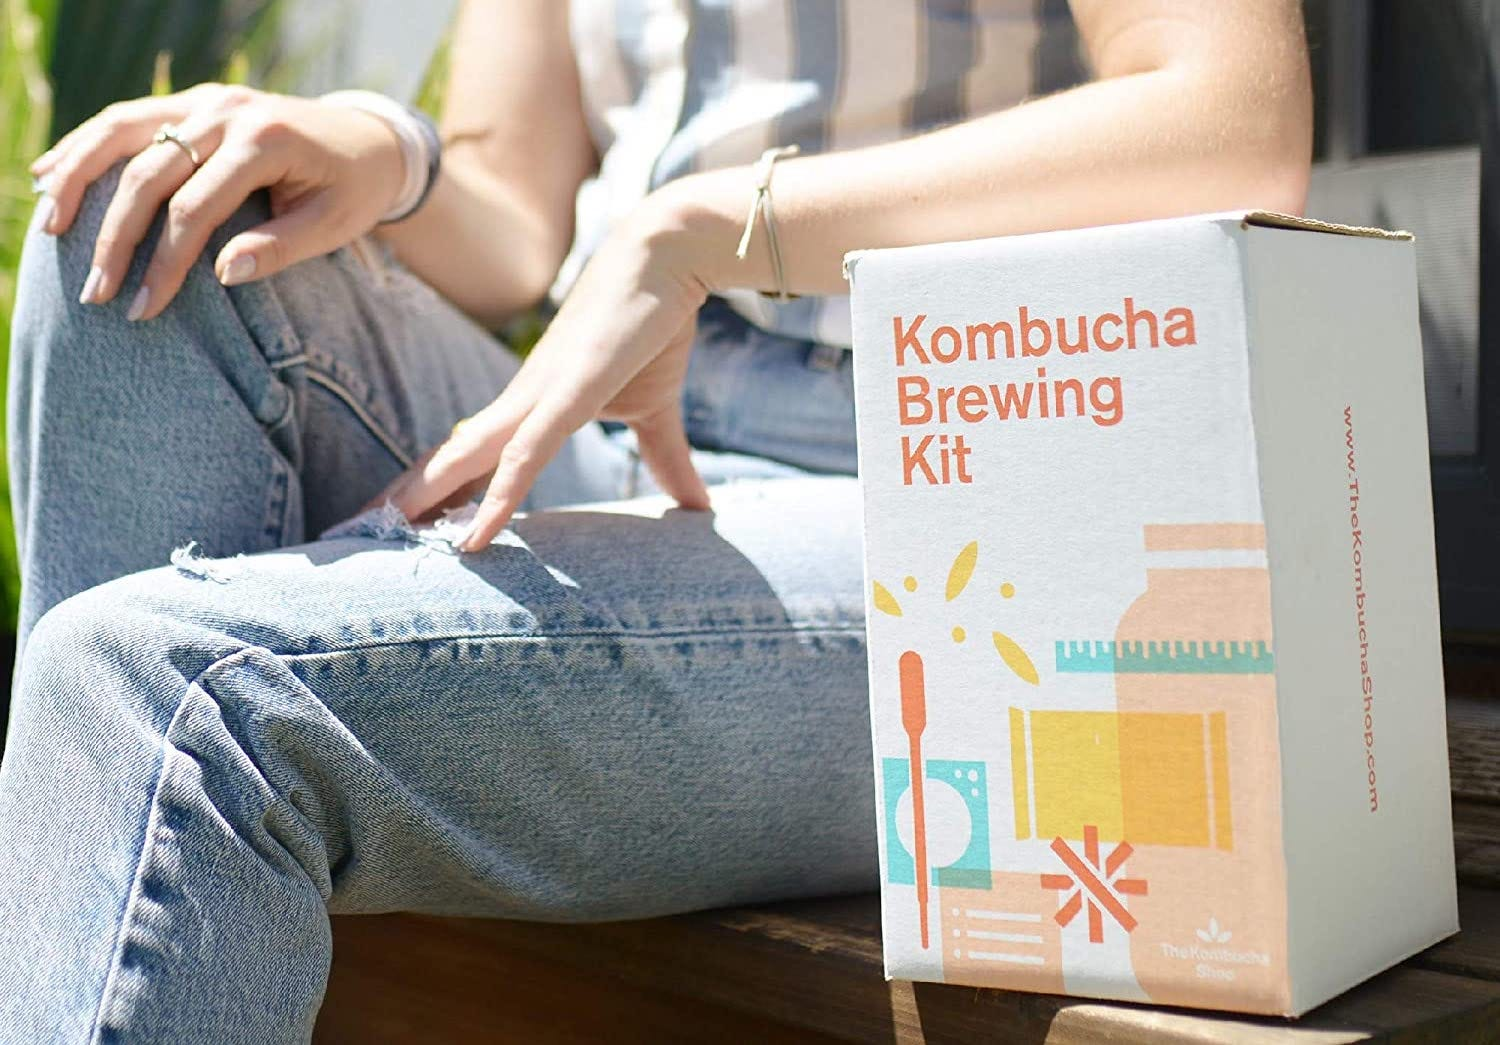 """A box reading """"Kombucha Brewing Kit"""" sits on a bench next to a woman wearing jeans"""